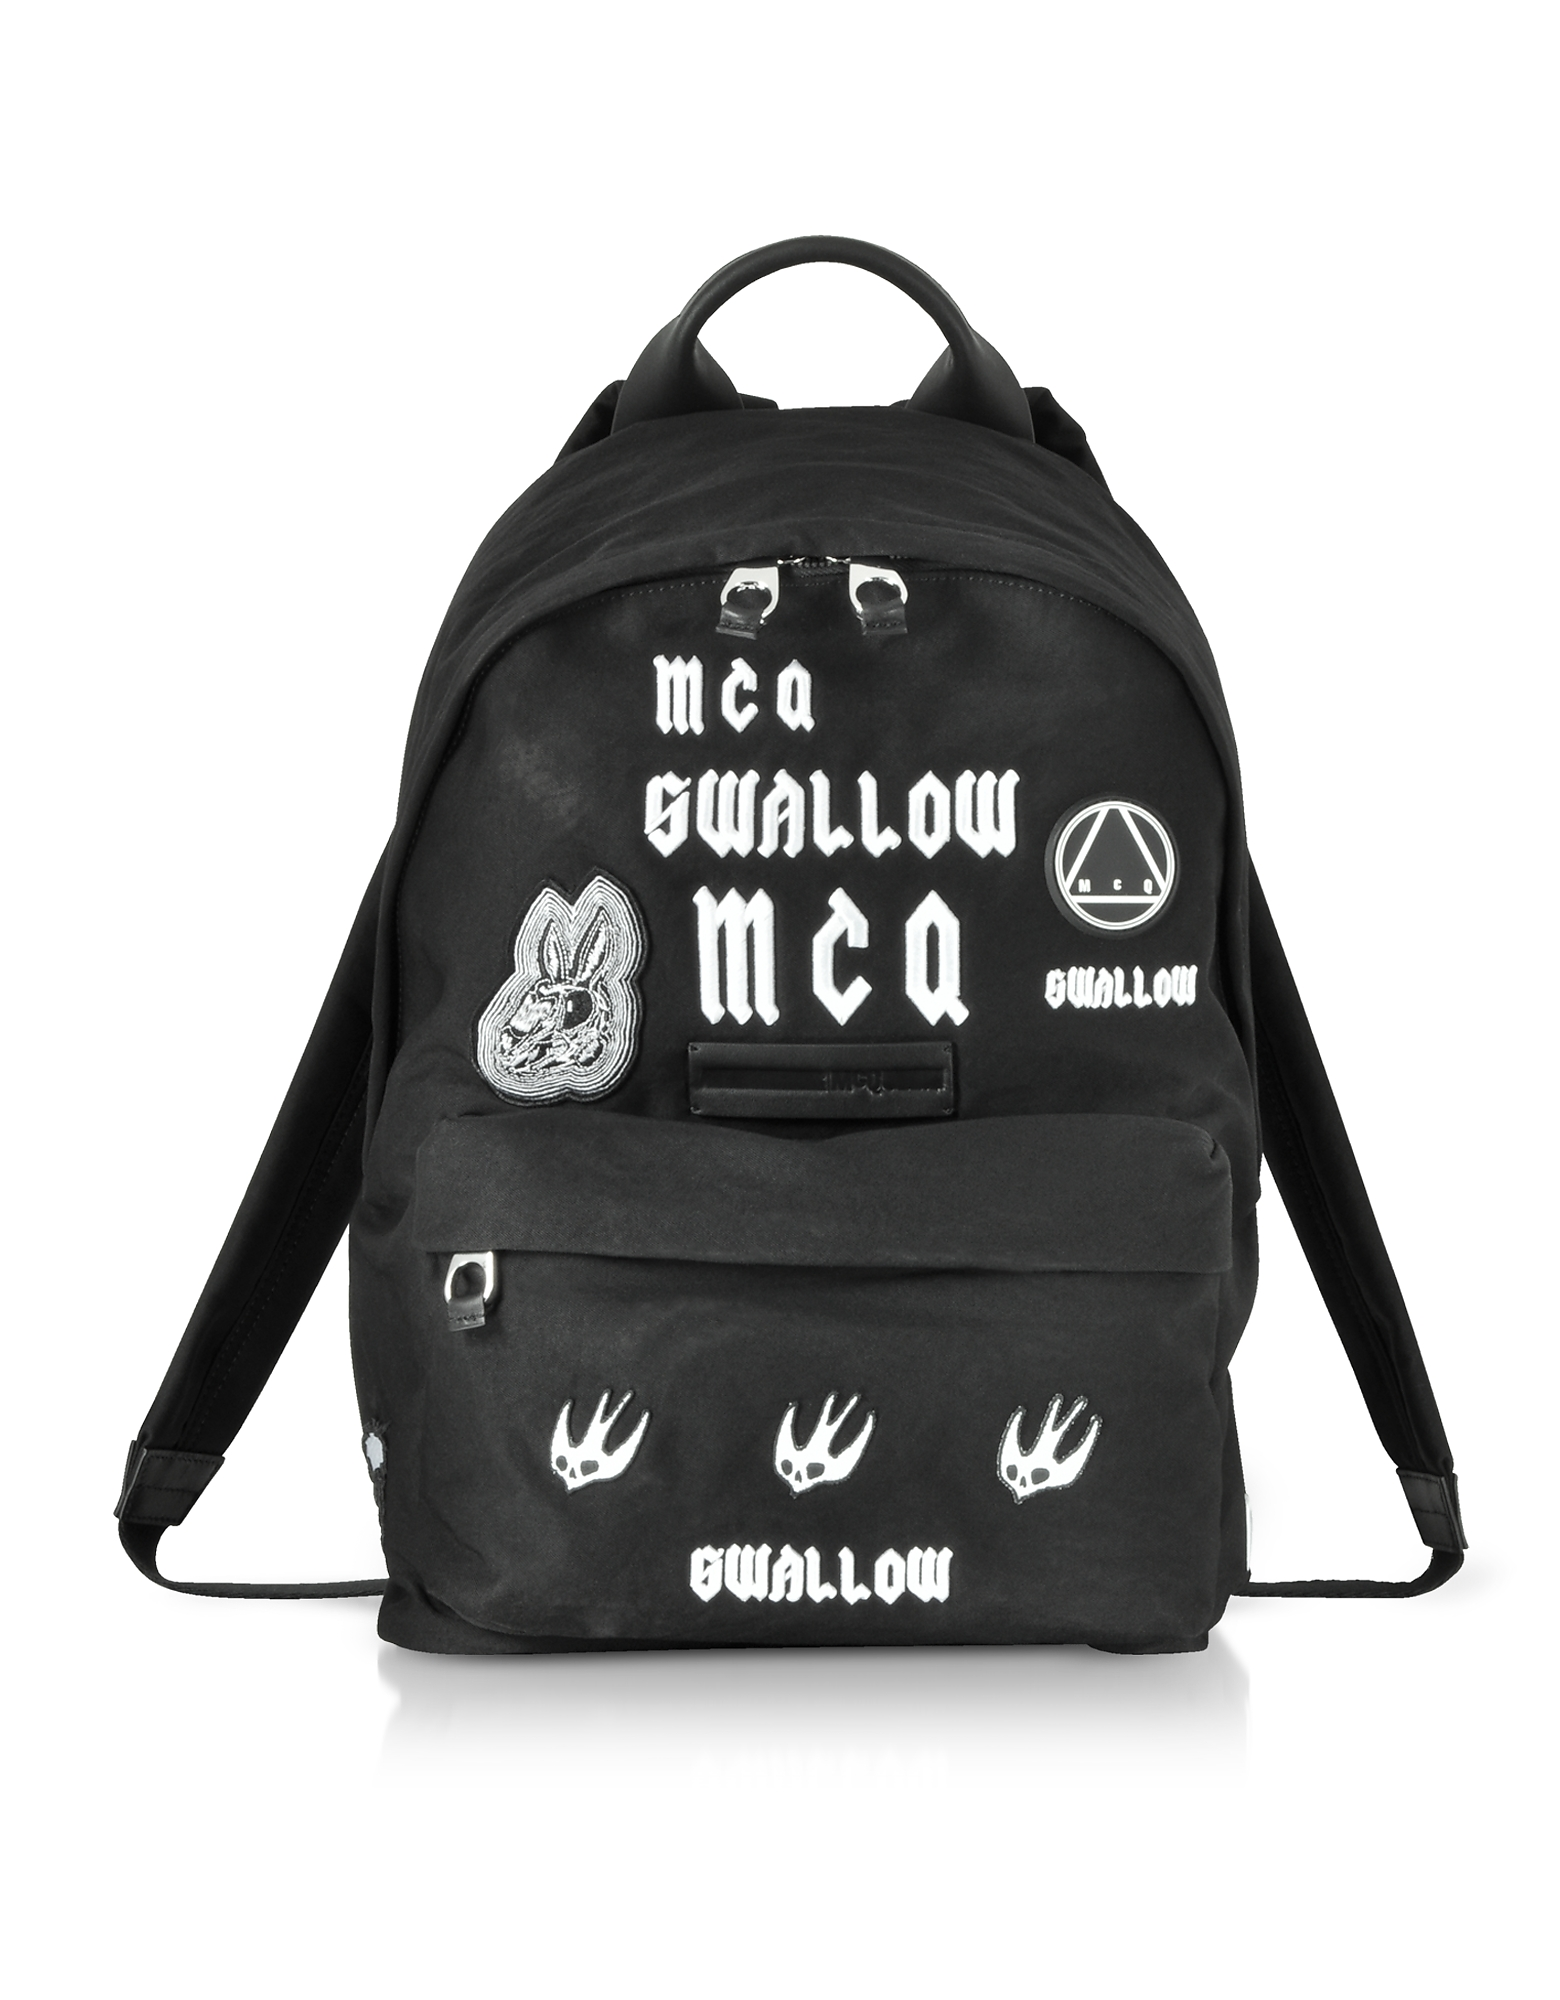 McQ Alexander McQueen Backpacks, Sponsorship Black Nylon Men's Backpack w/ Badges